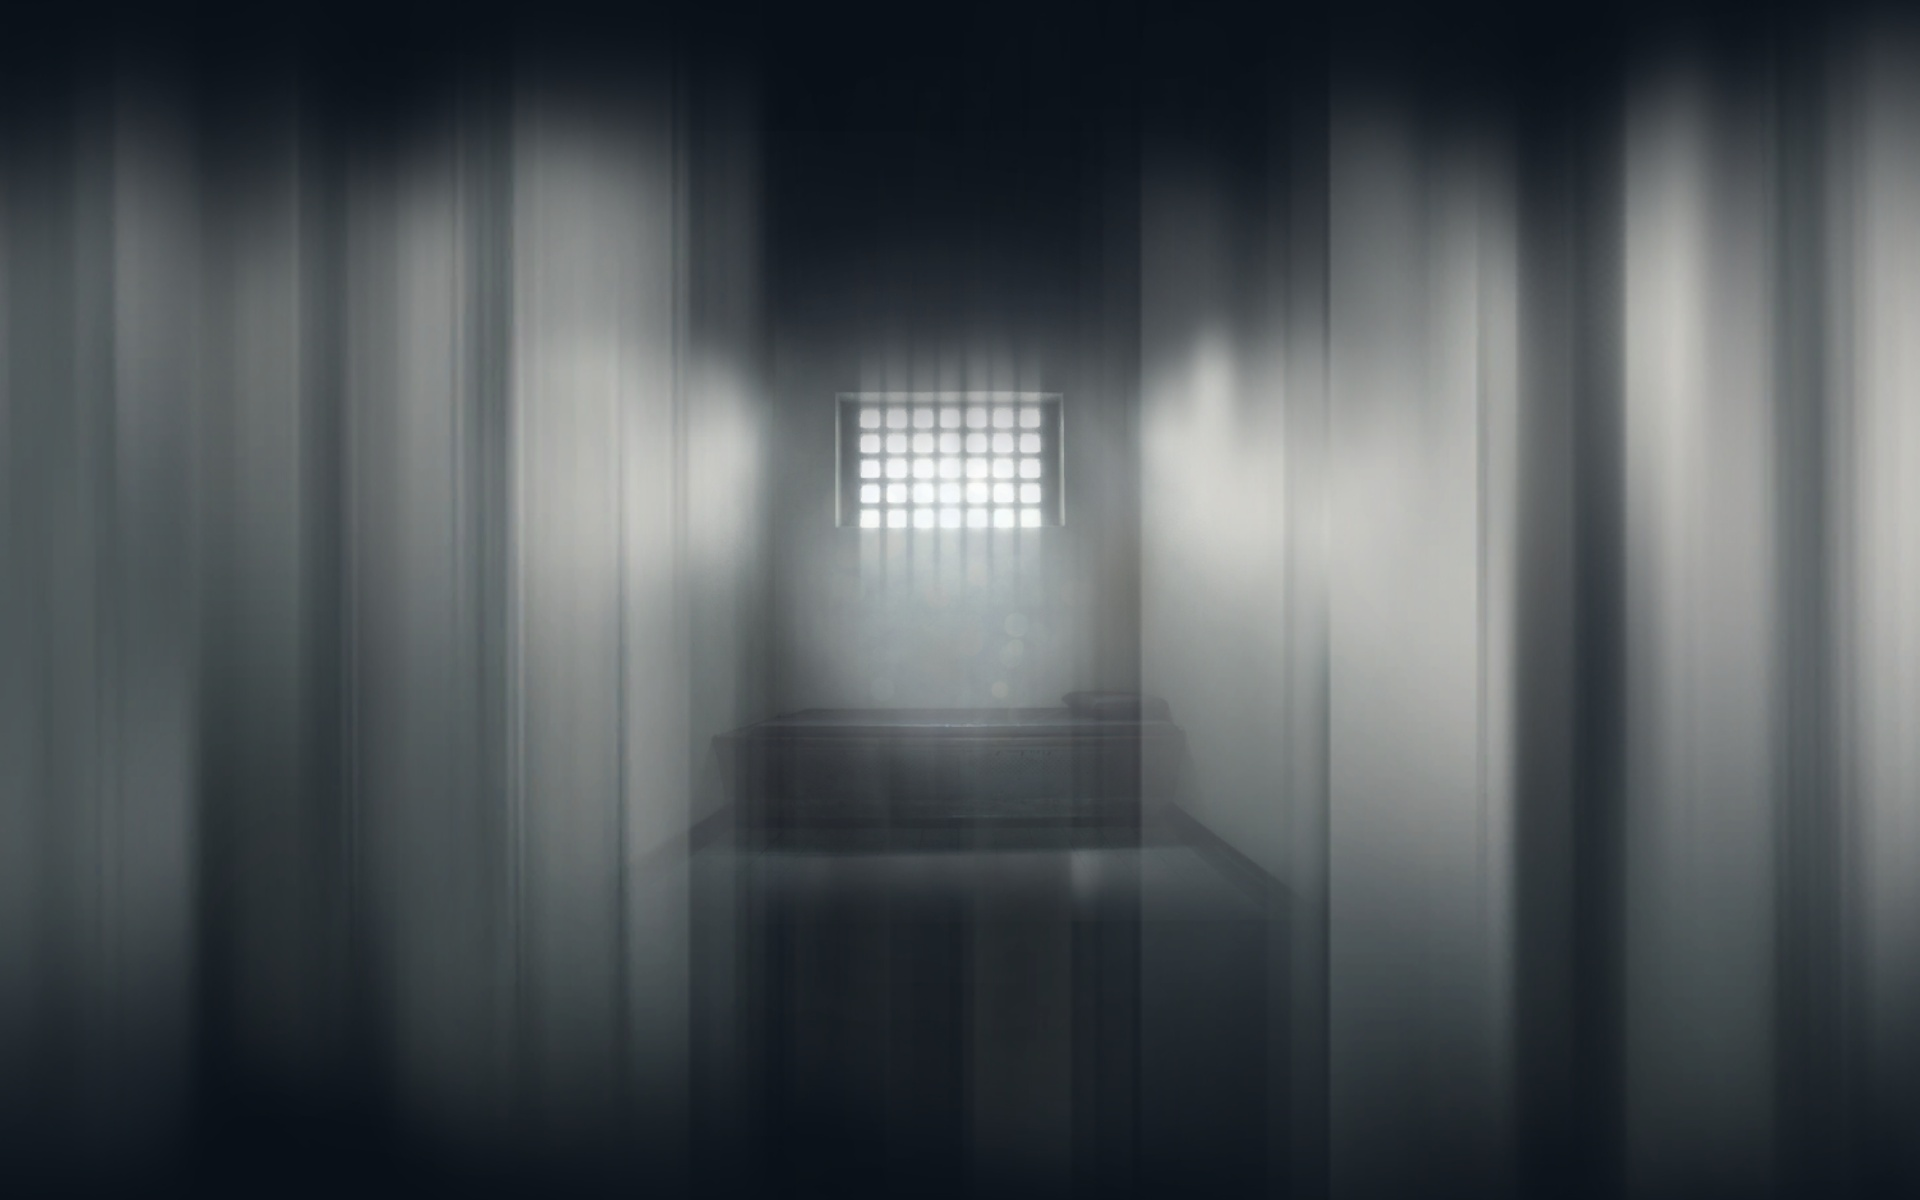 wdr unity app visualization of jail cell